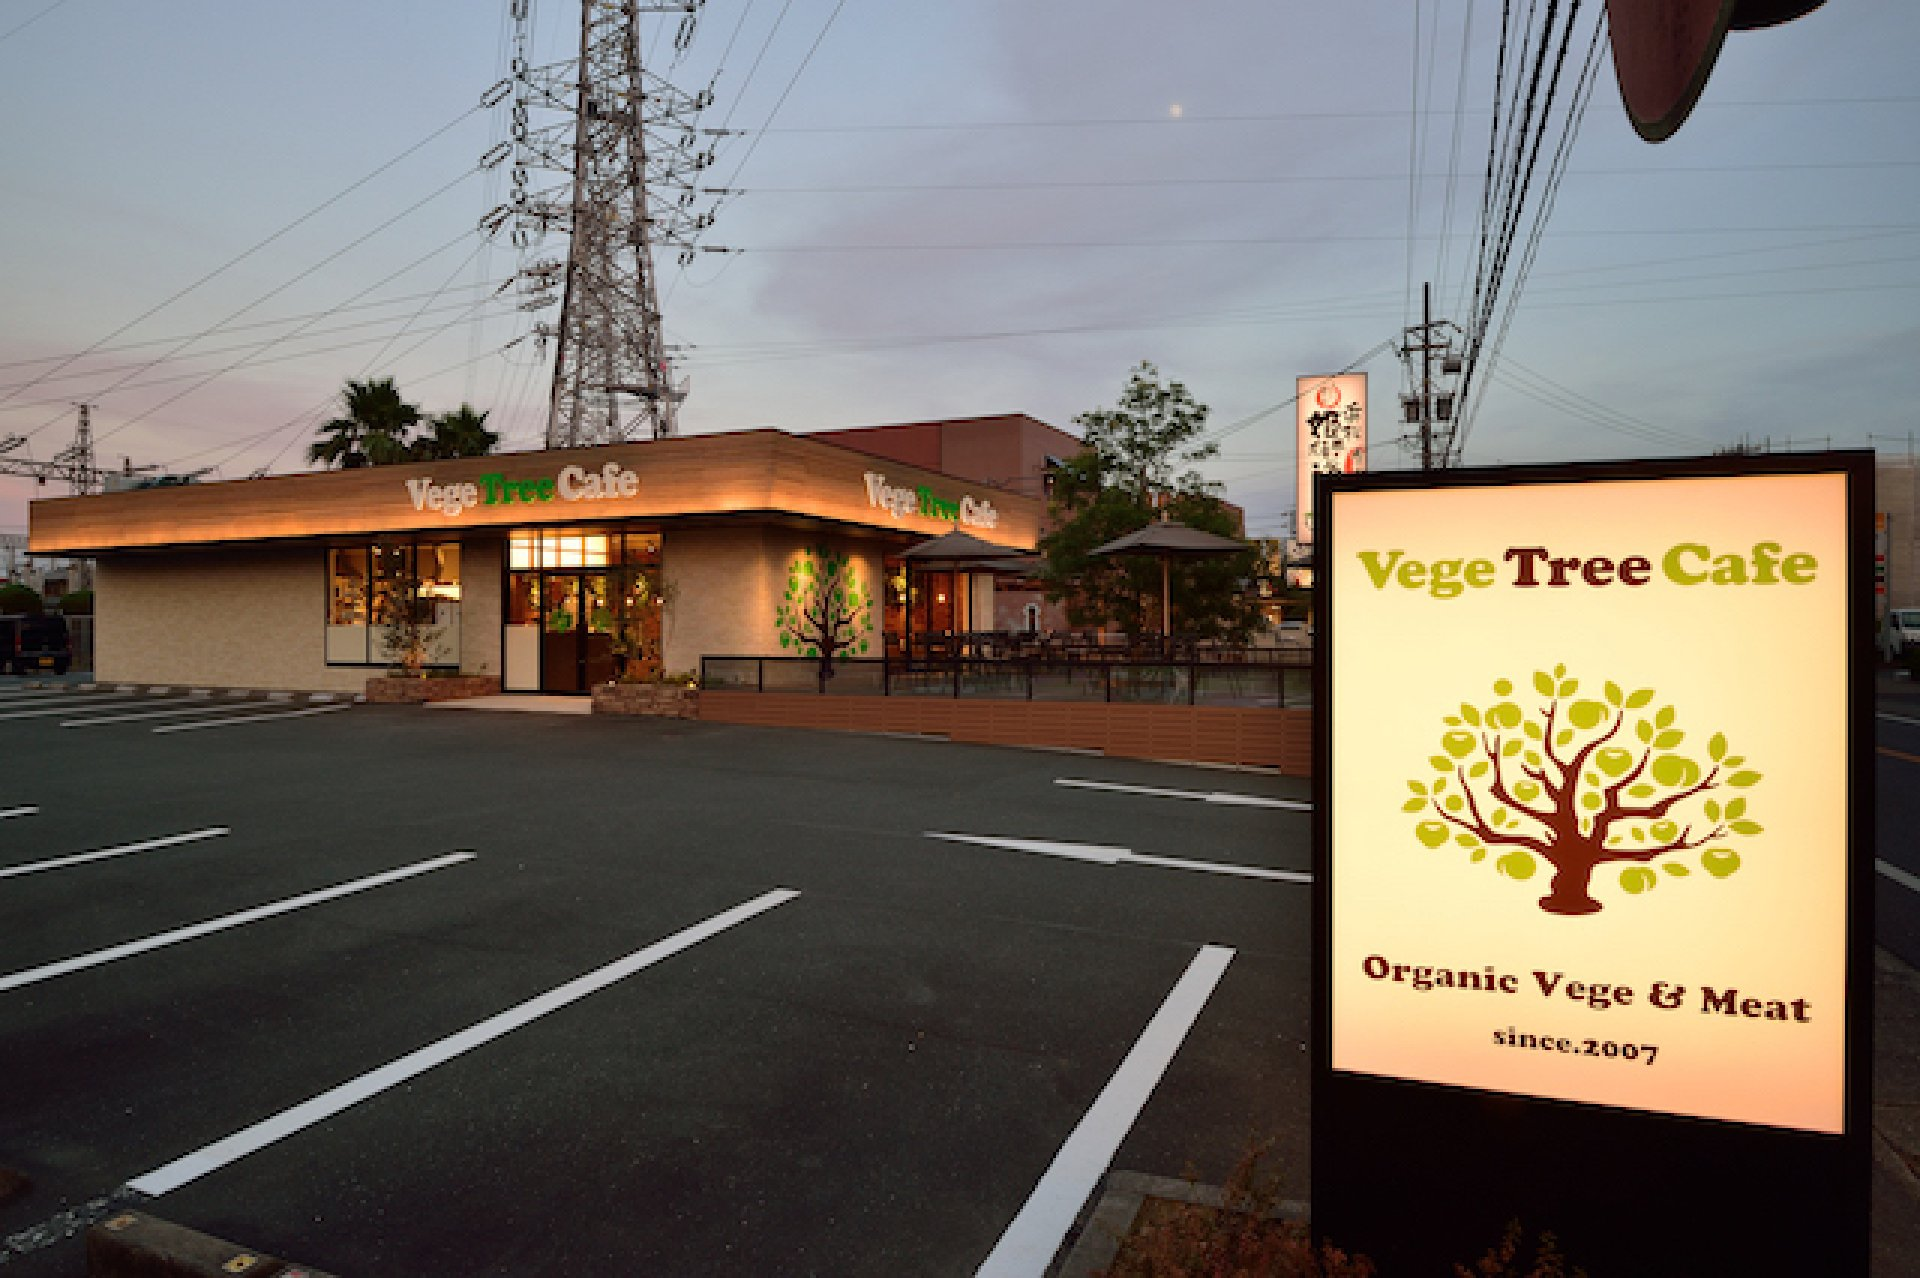 vege tree cafe0024.JPG